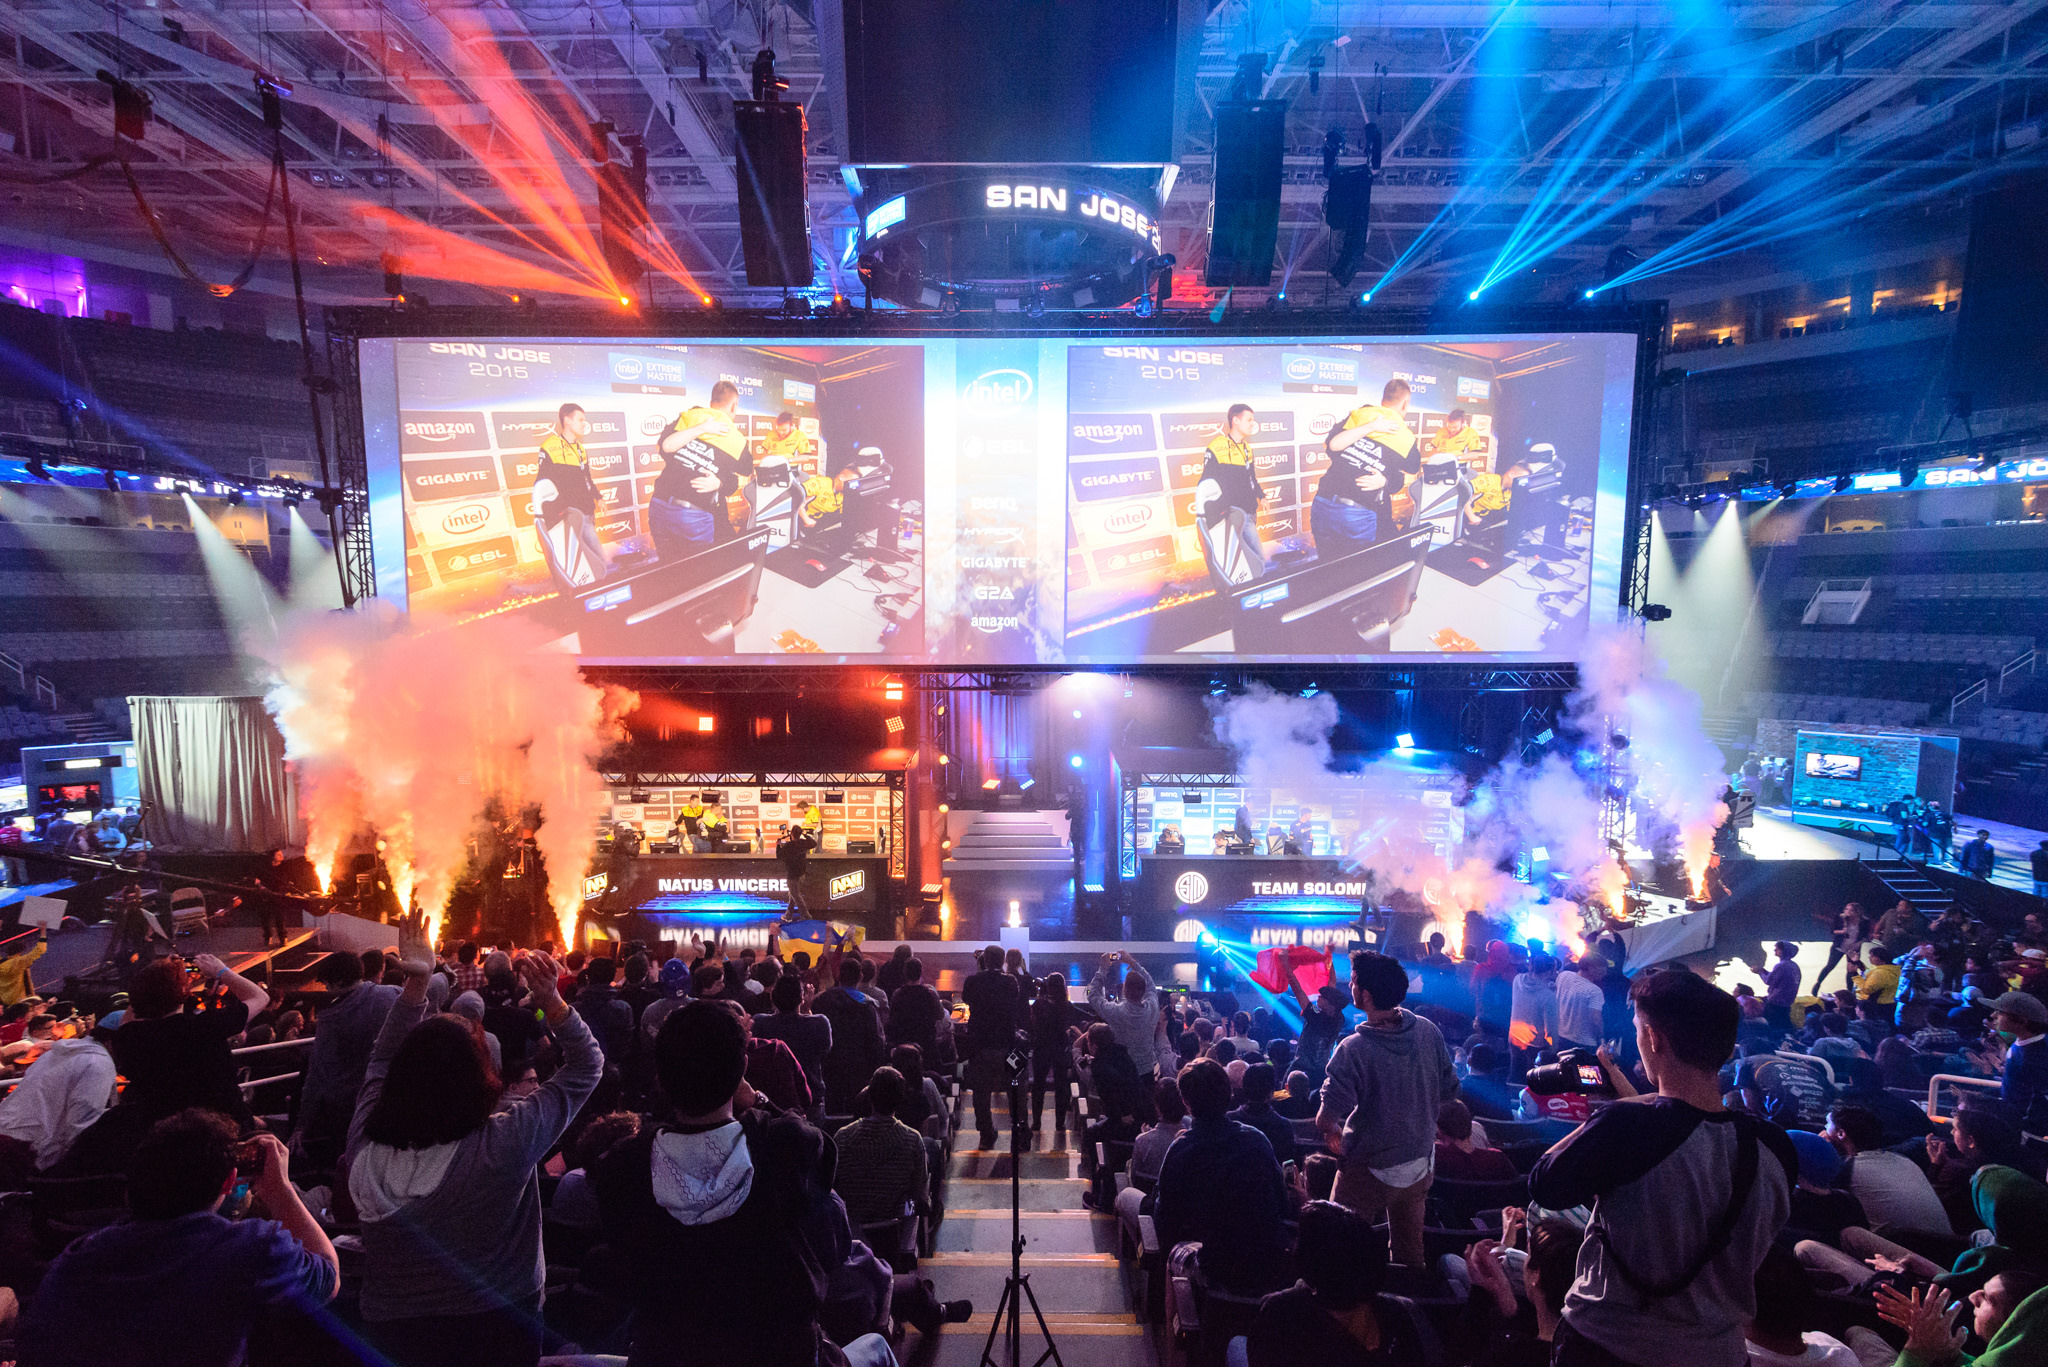 Intel Extreme Masters 2015 in San Jose, Calif., celebrated 10 years of bringing eSports to the globe through ESL.